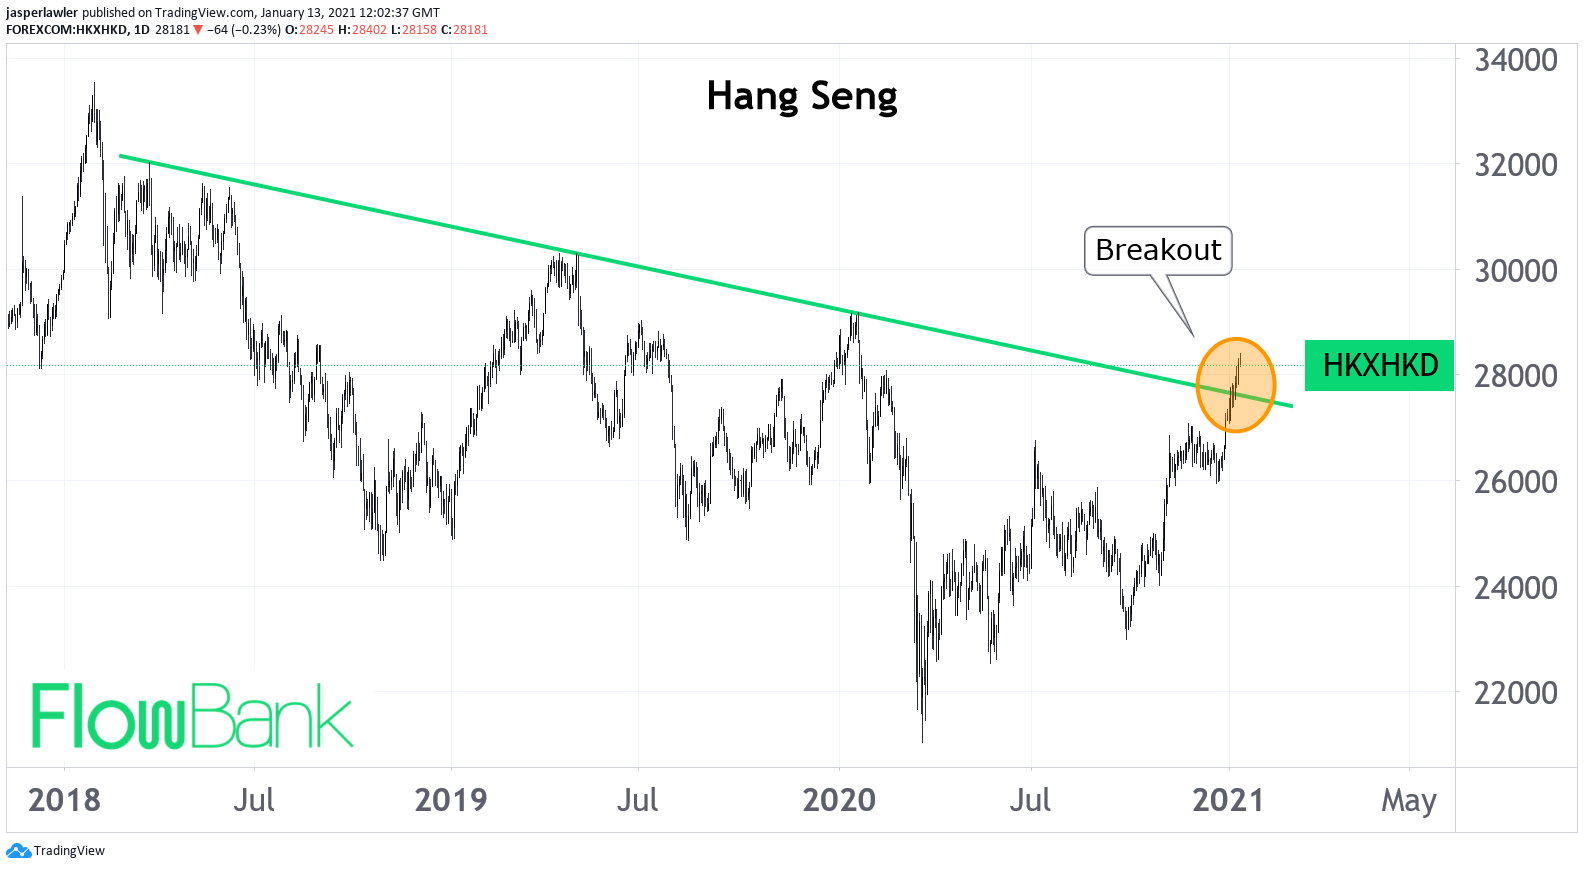 Hang Seng index breaks out from 3-year trendline